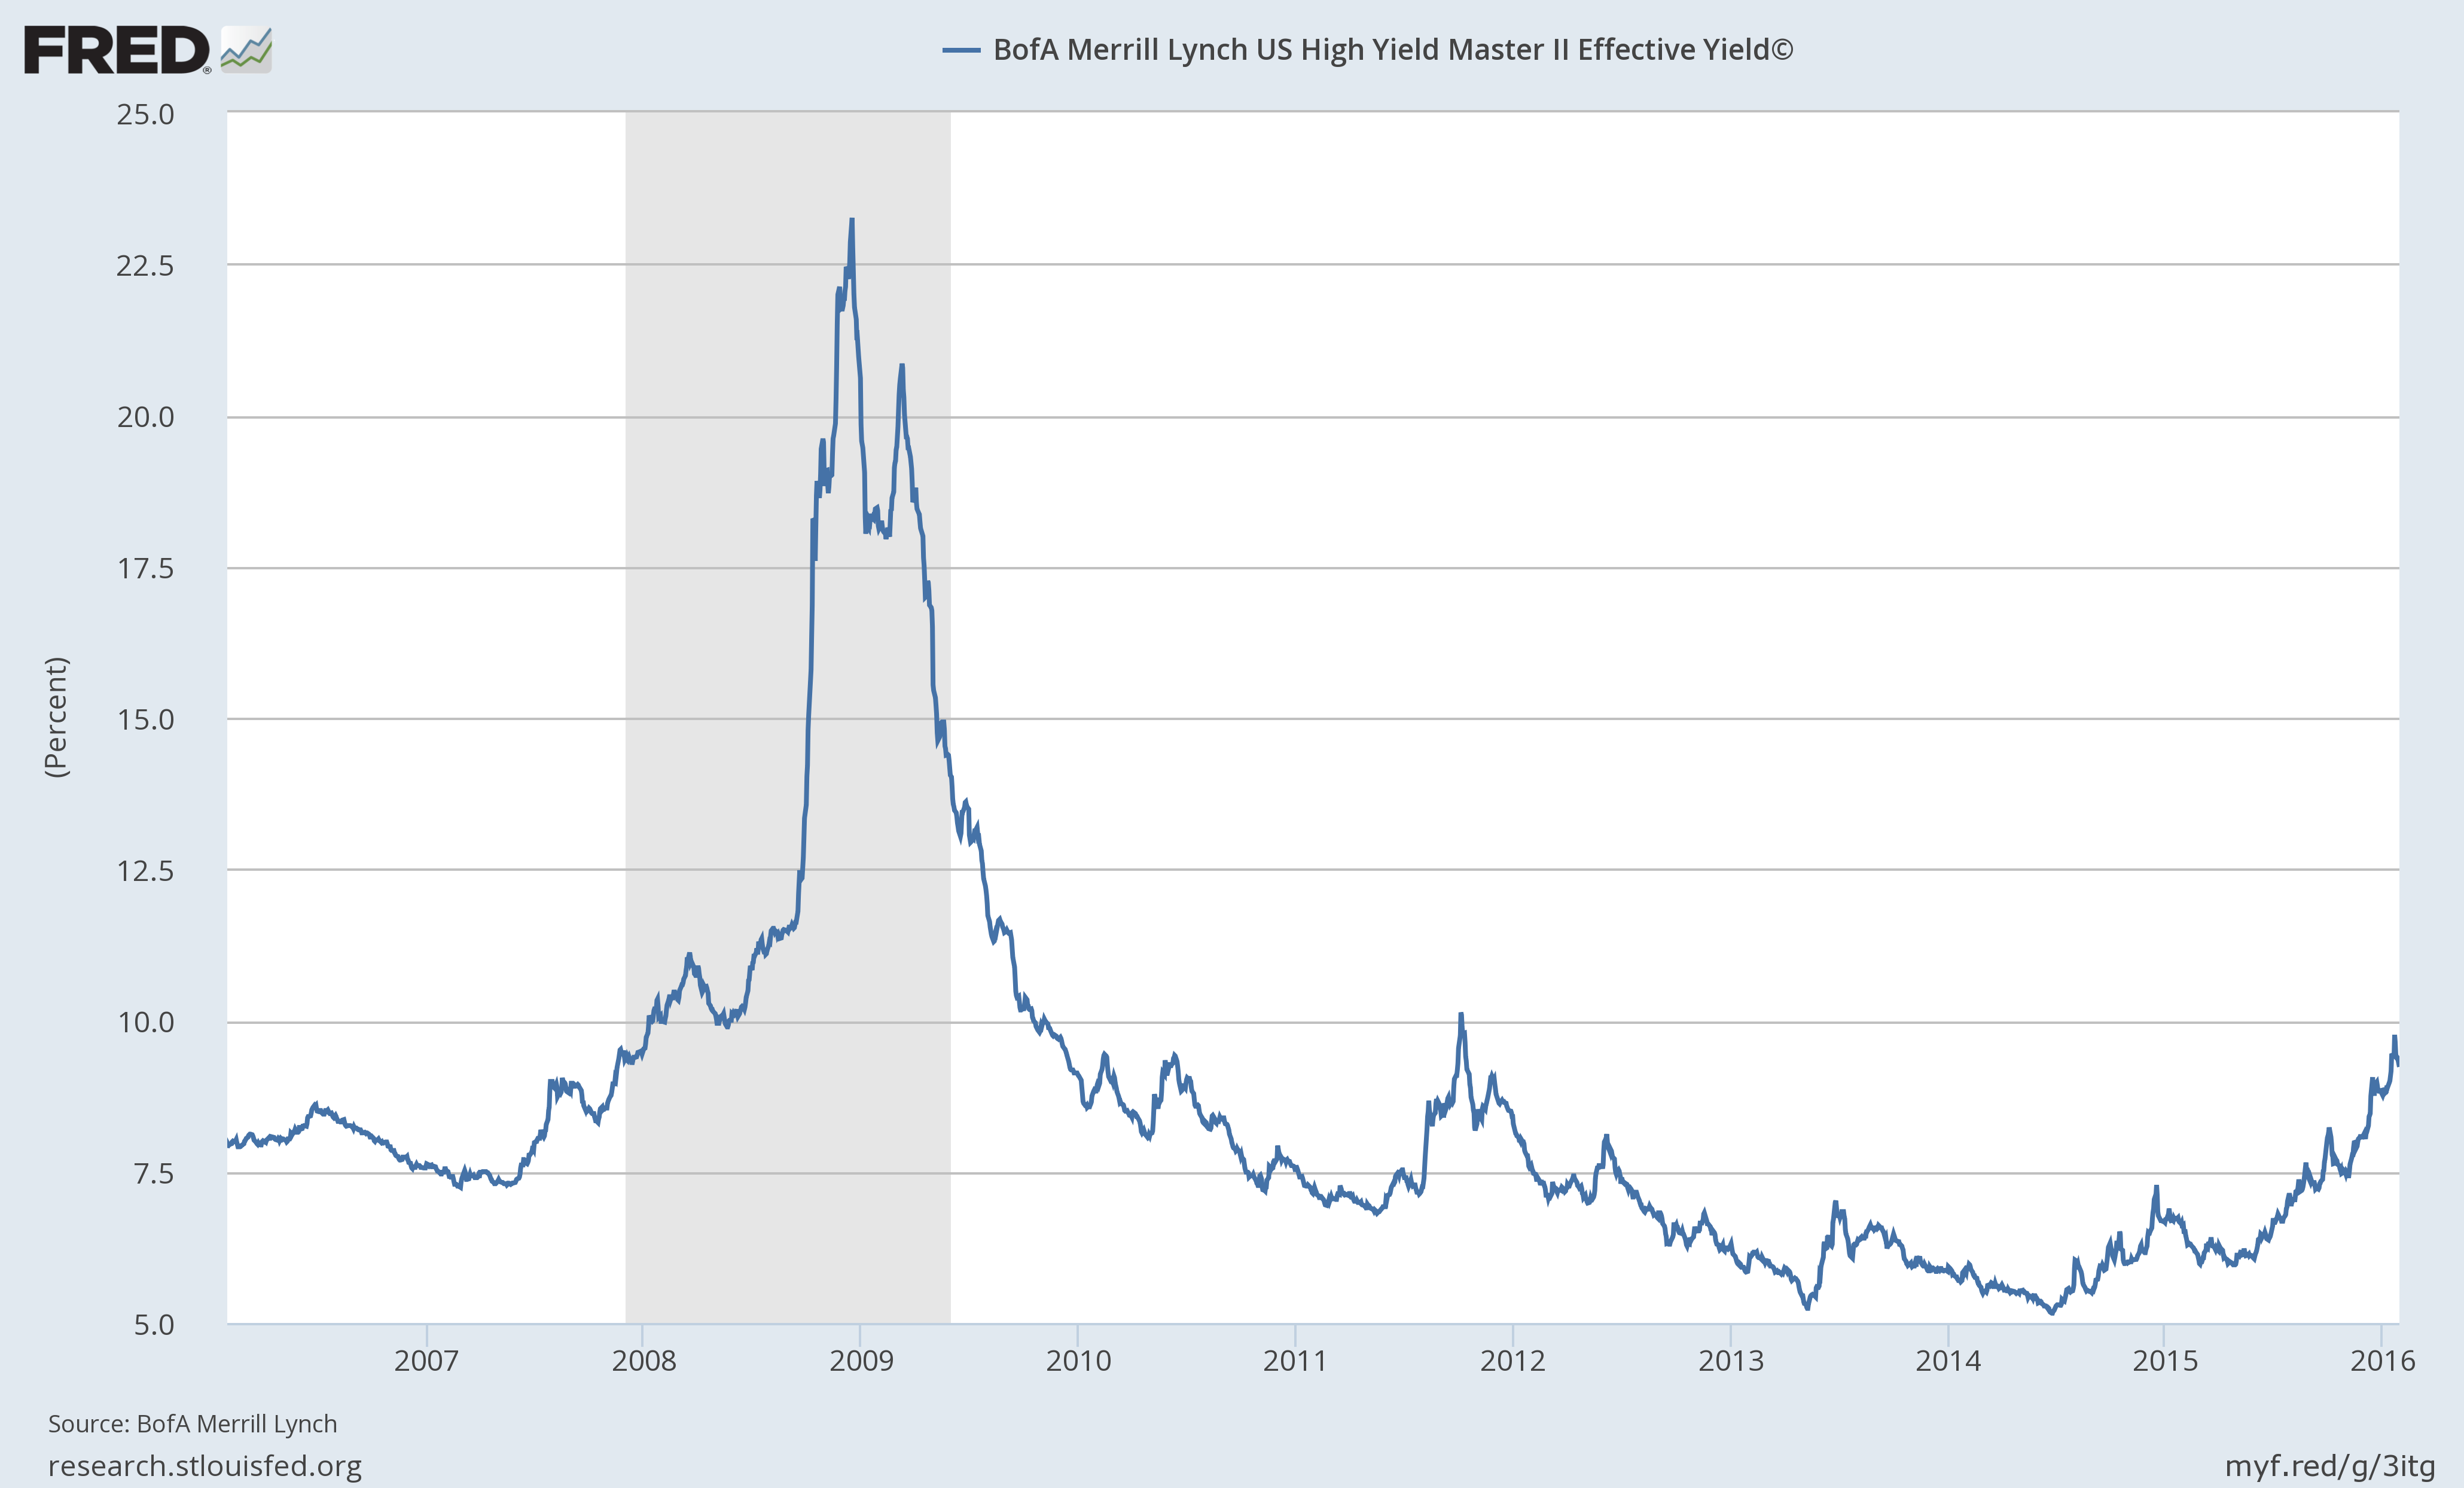 BofA Merrill Lynch U.S. High Yield Master II Effective Yield Source: retrieved from FRED, Federal Reserve Bank of St. Louis